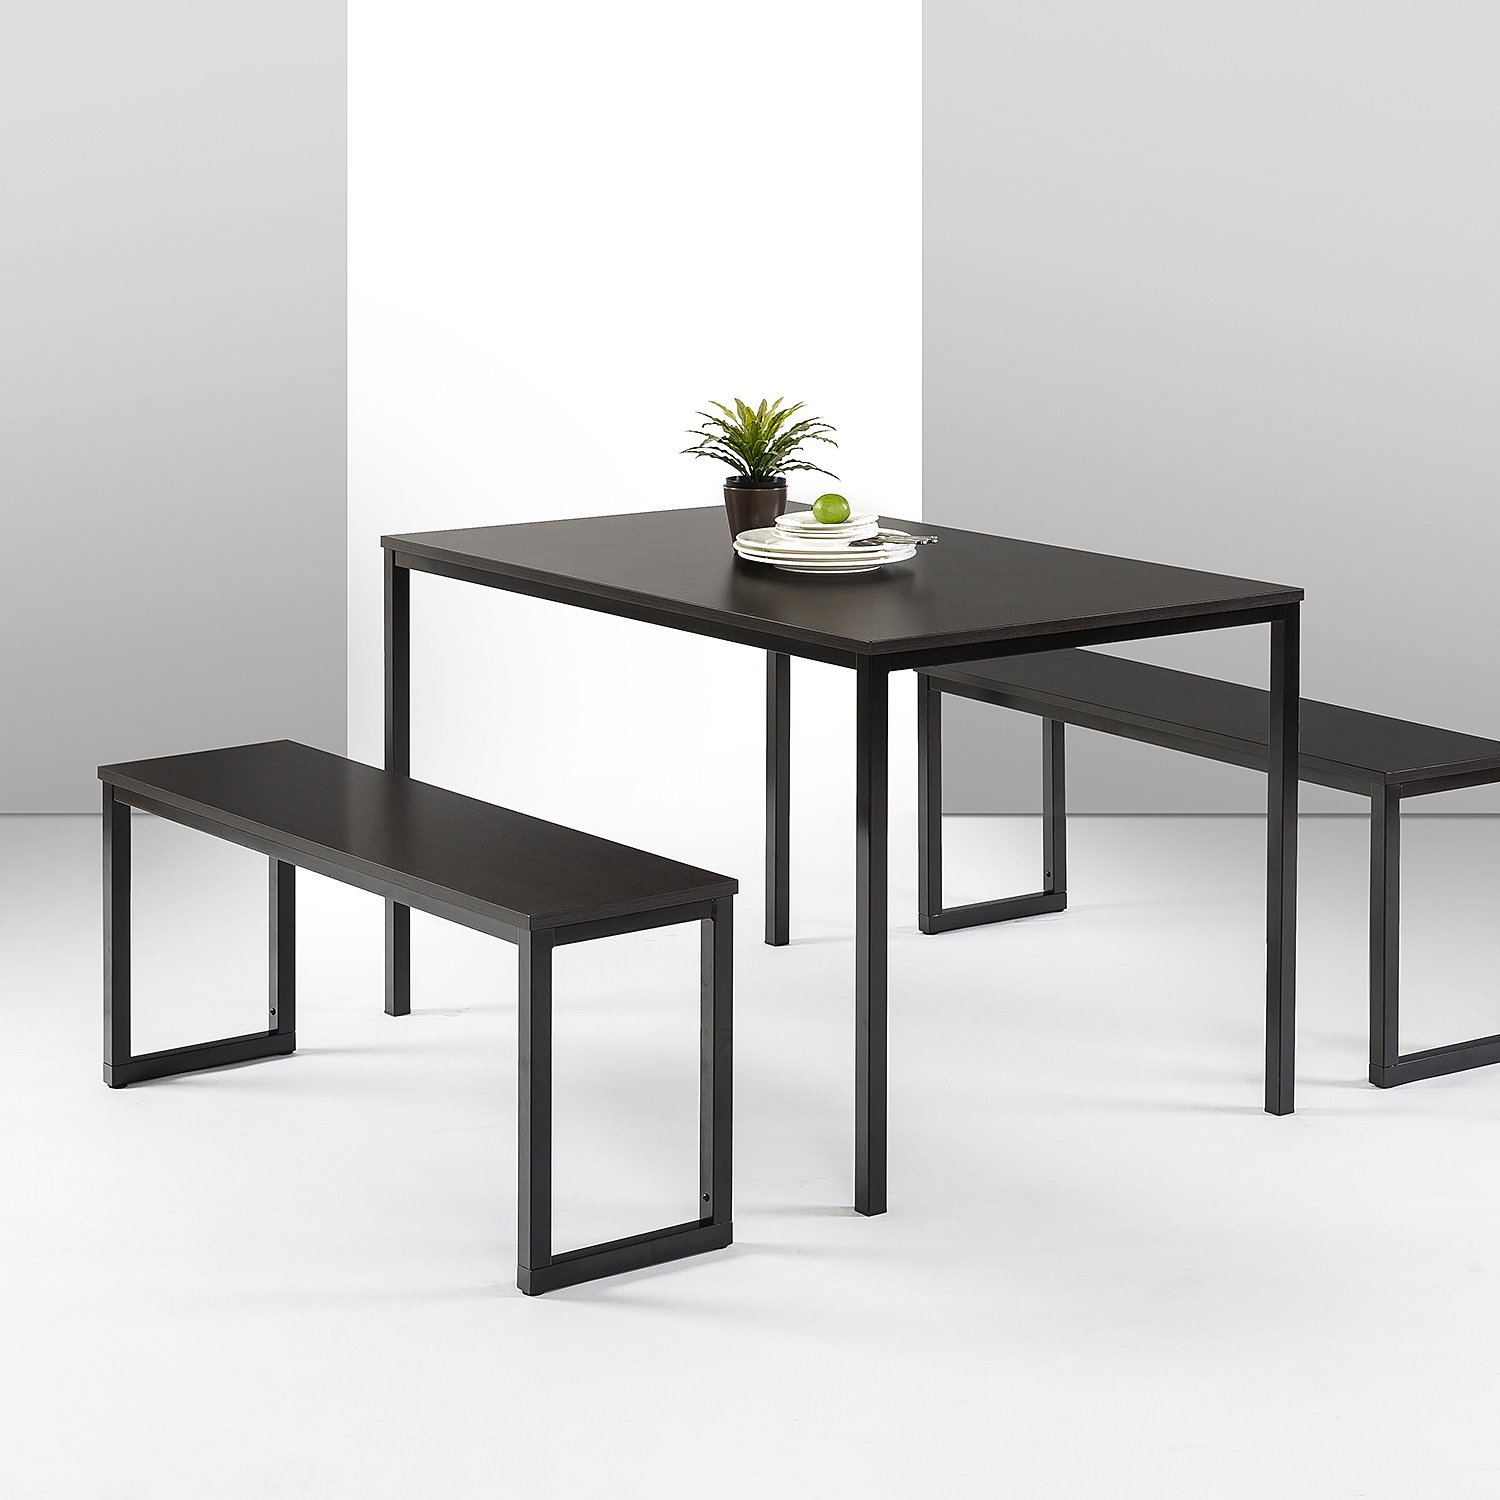 Zinus Modern Studio Collection Soho Dining Table with Two Benches / 3 Piece Set, Espresso